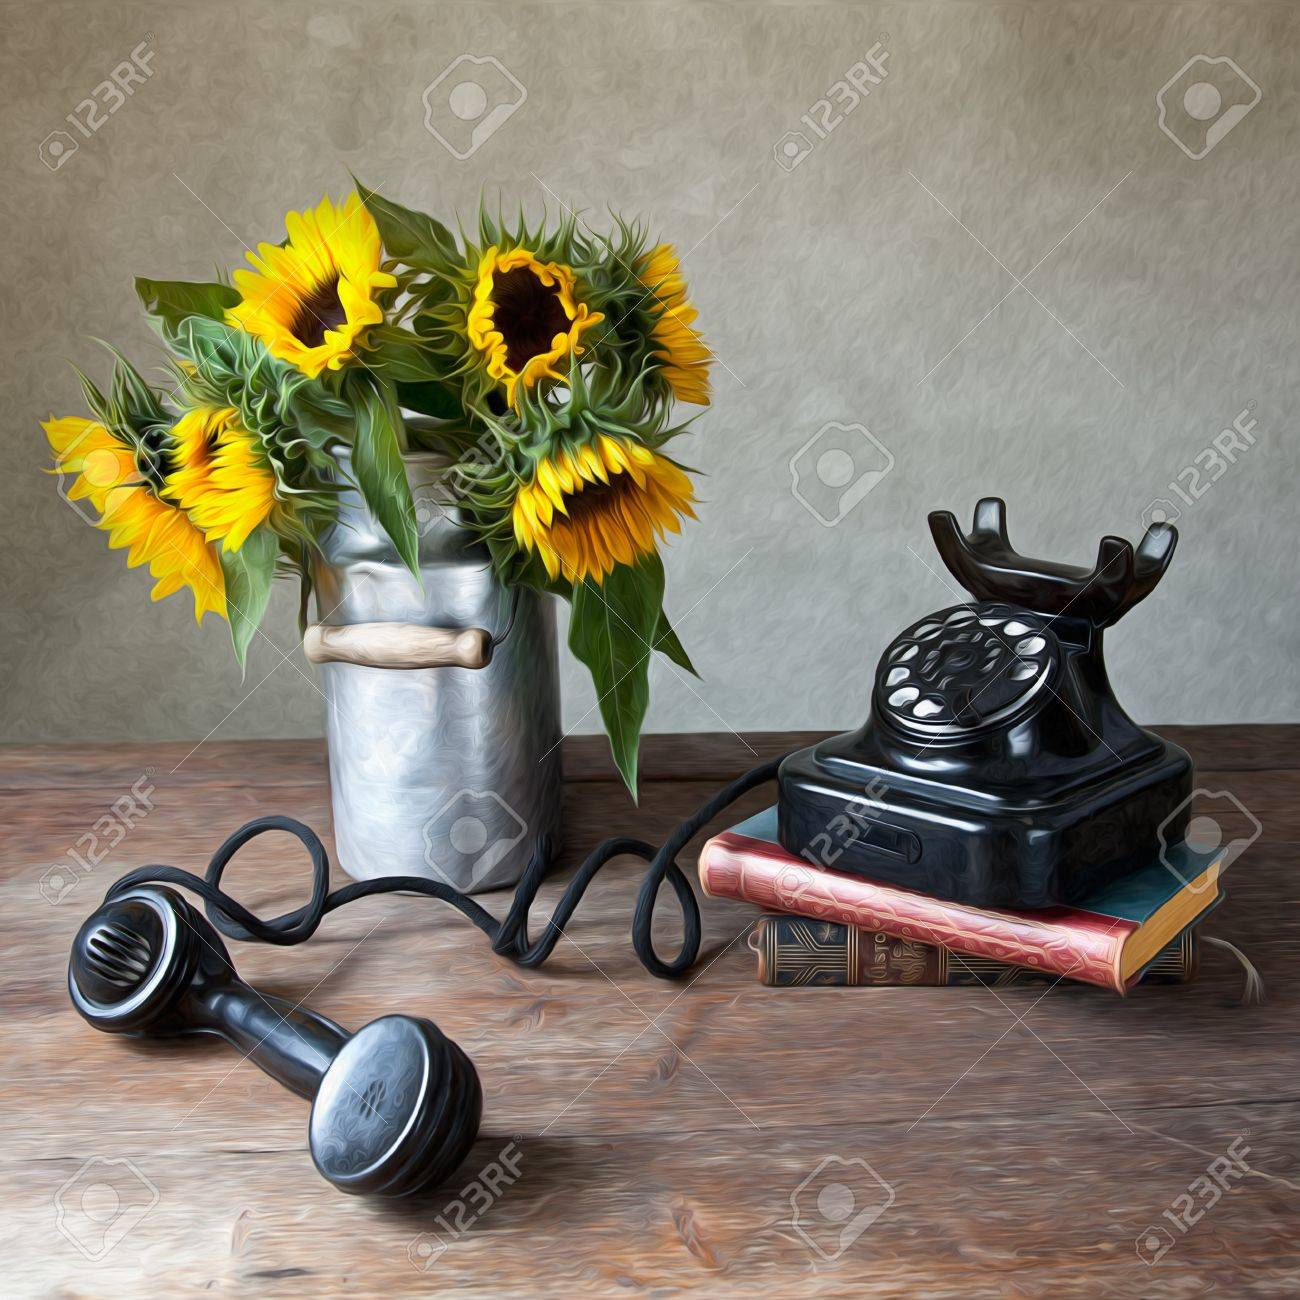 Still Life Illustration with Sunflowers and antique black Telephone in Oil Painting Style Stock Photo - 10418725